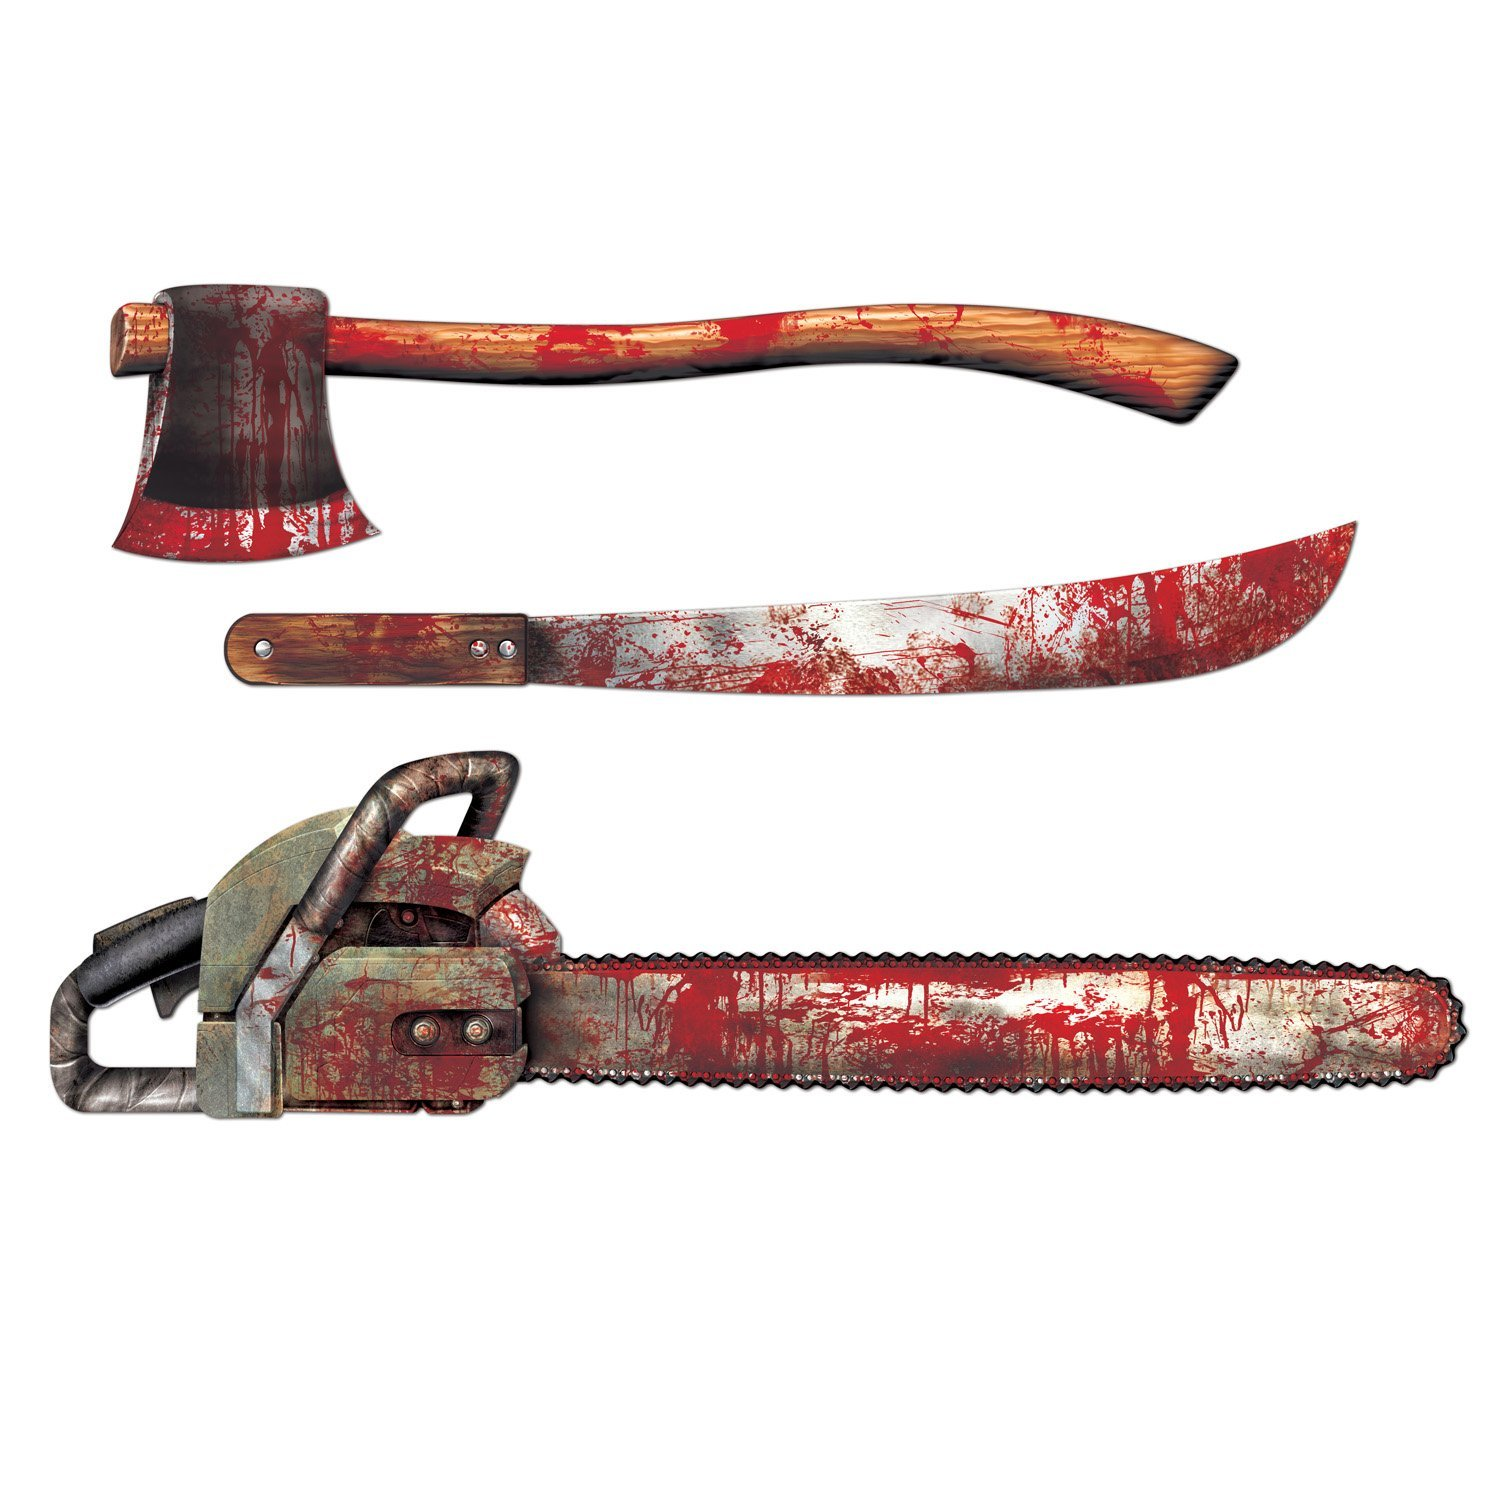 Halloween Cut Outs Cutout Bloody Weapons Weapon Gory Scenery ...